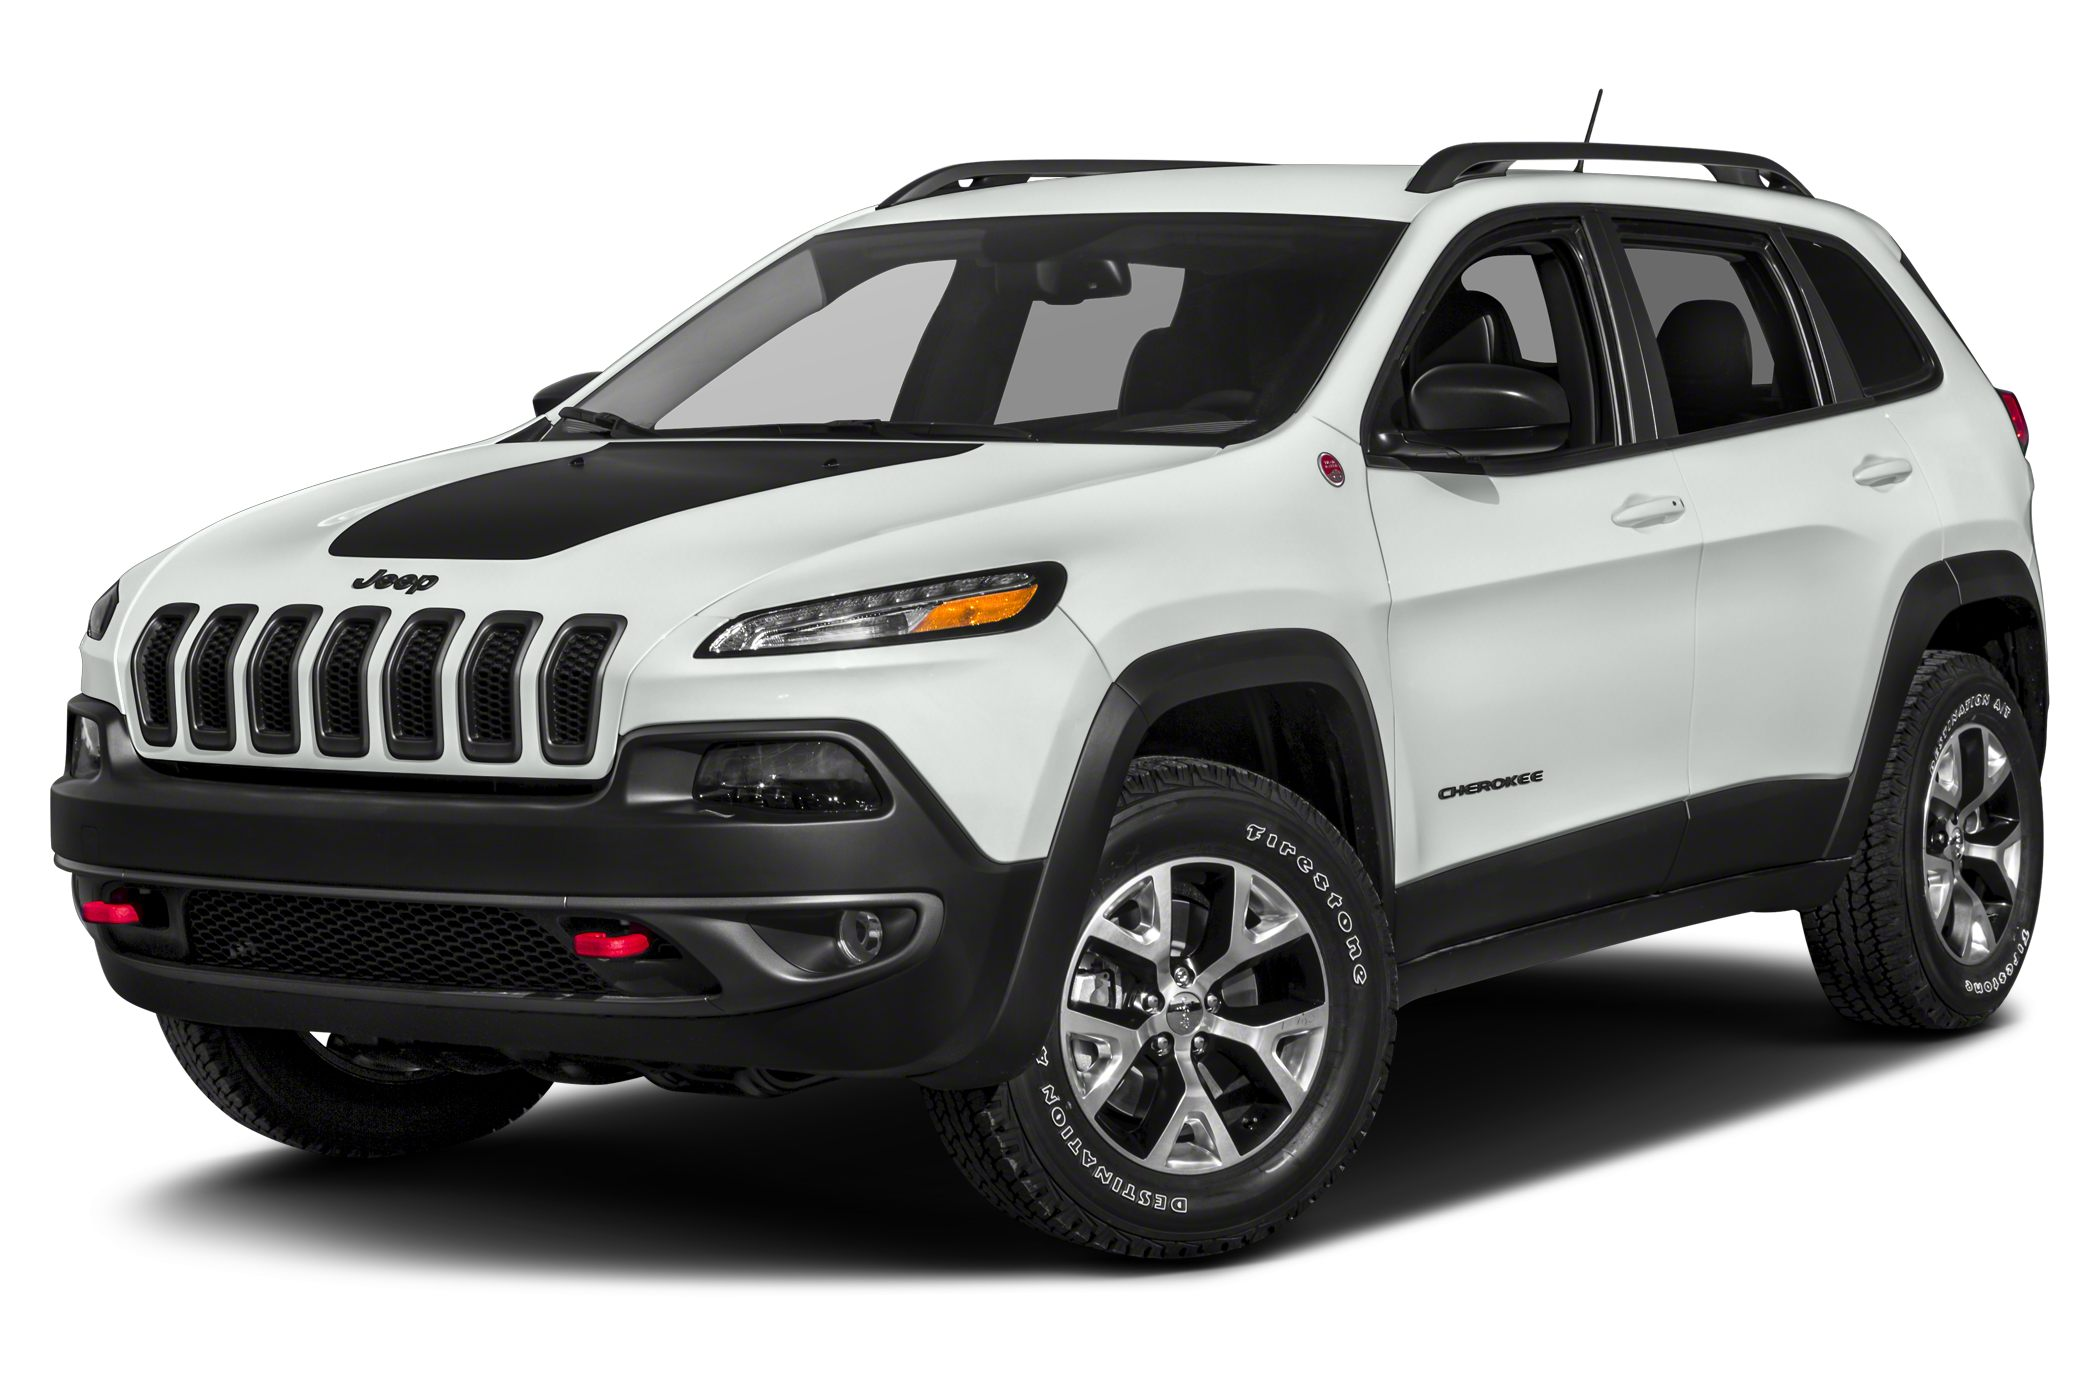 2017 Jeep Cherokee Trailhawk 4dr 4x4 Equipment